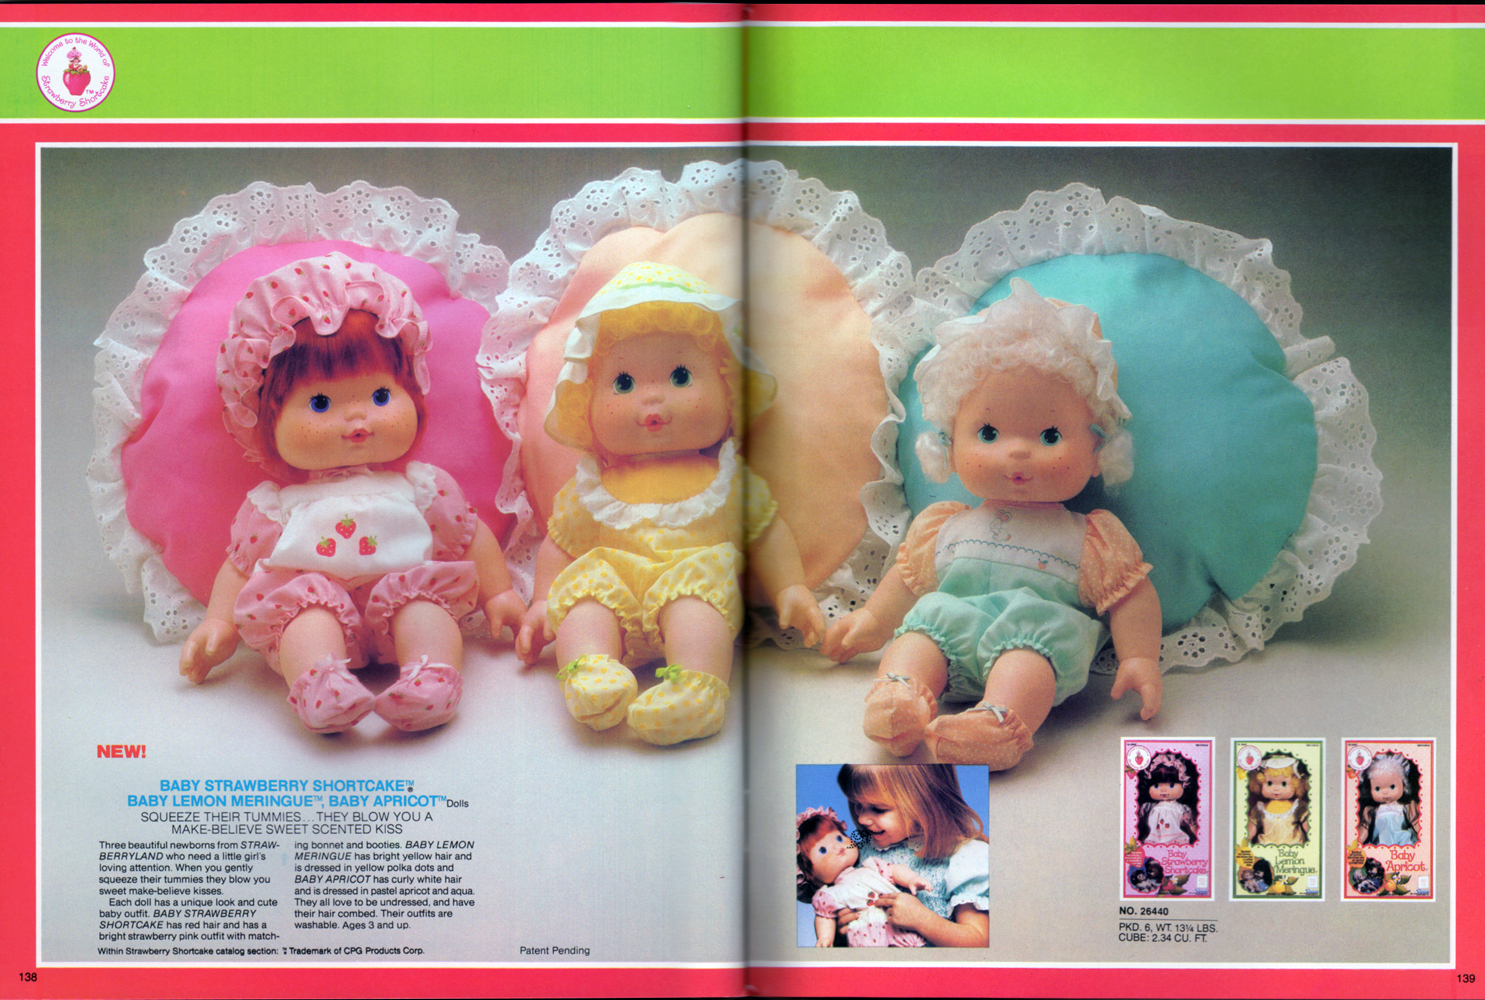 Baby Strawberry Shortcake, Baby Lemon Meringue, and Baby Apricot dolls from Kenner Products, 1982.